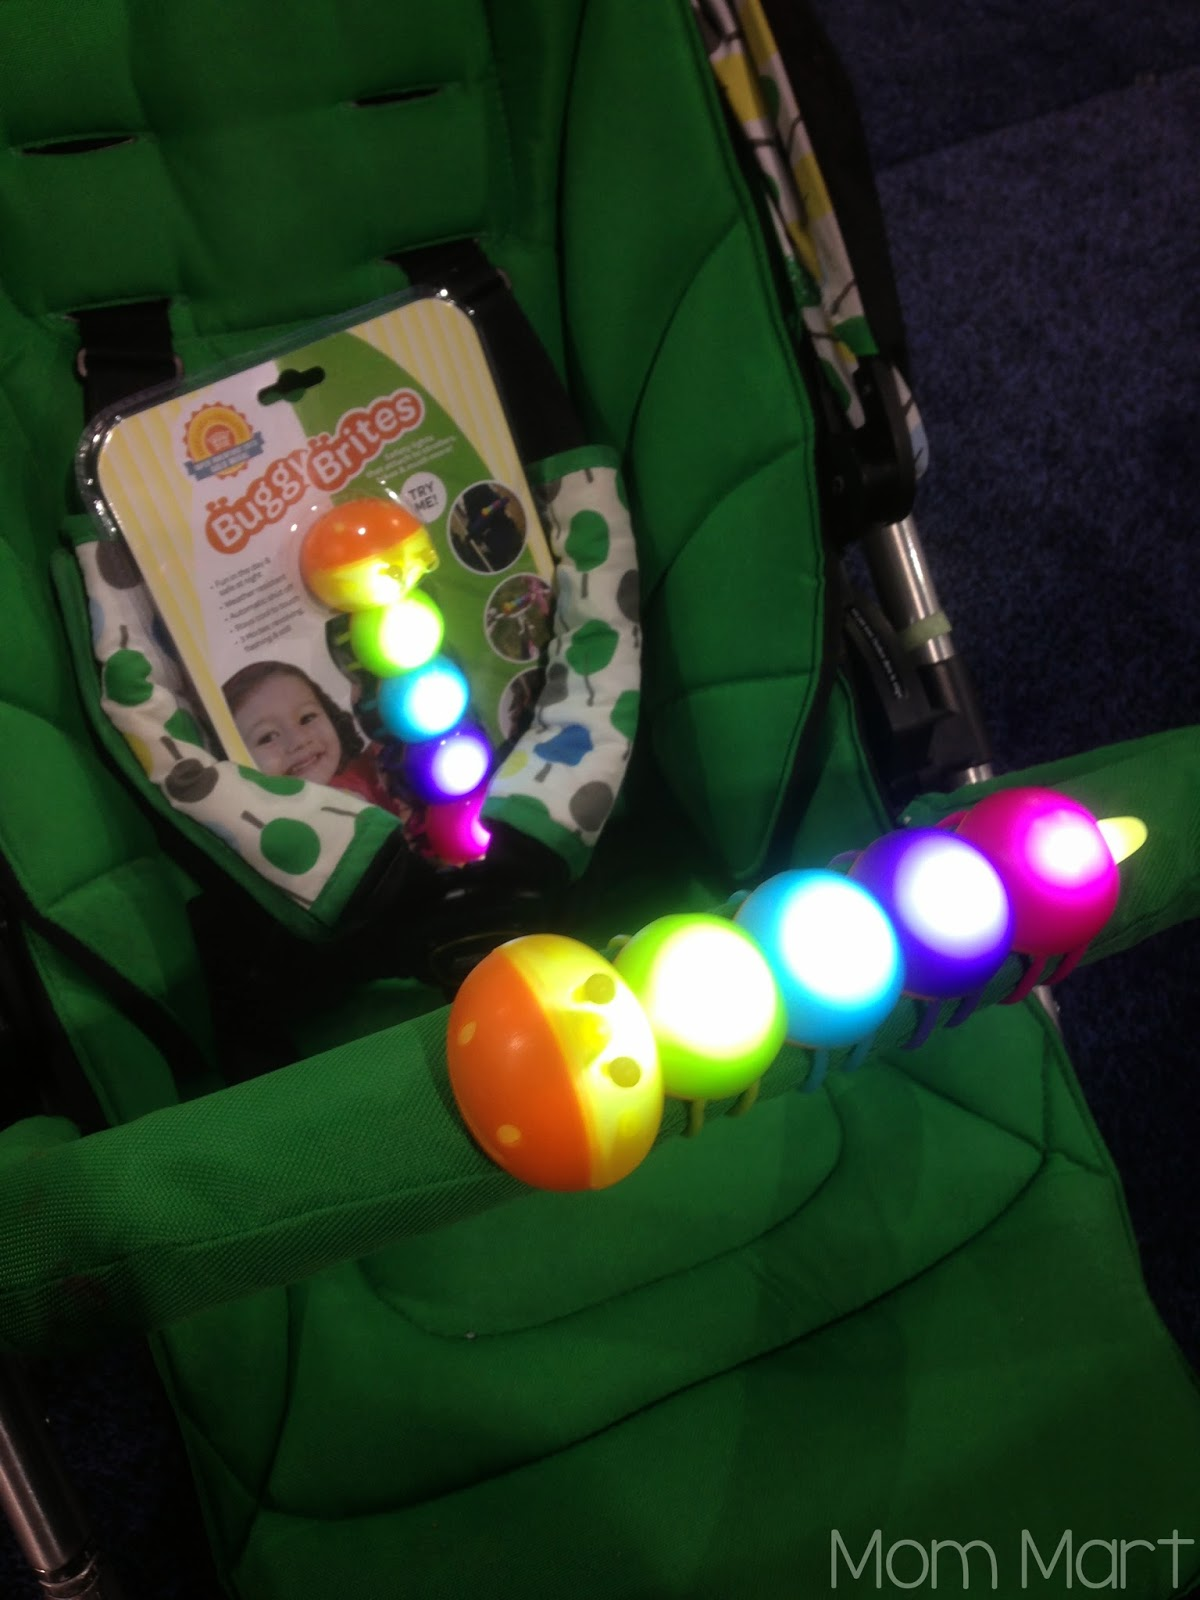 ABC Kids Expo 2014 The Toys of #ABCKids14 buggy brites